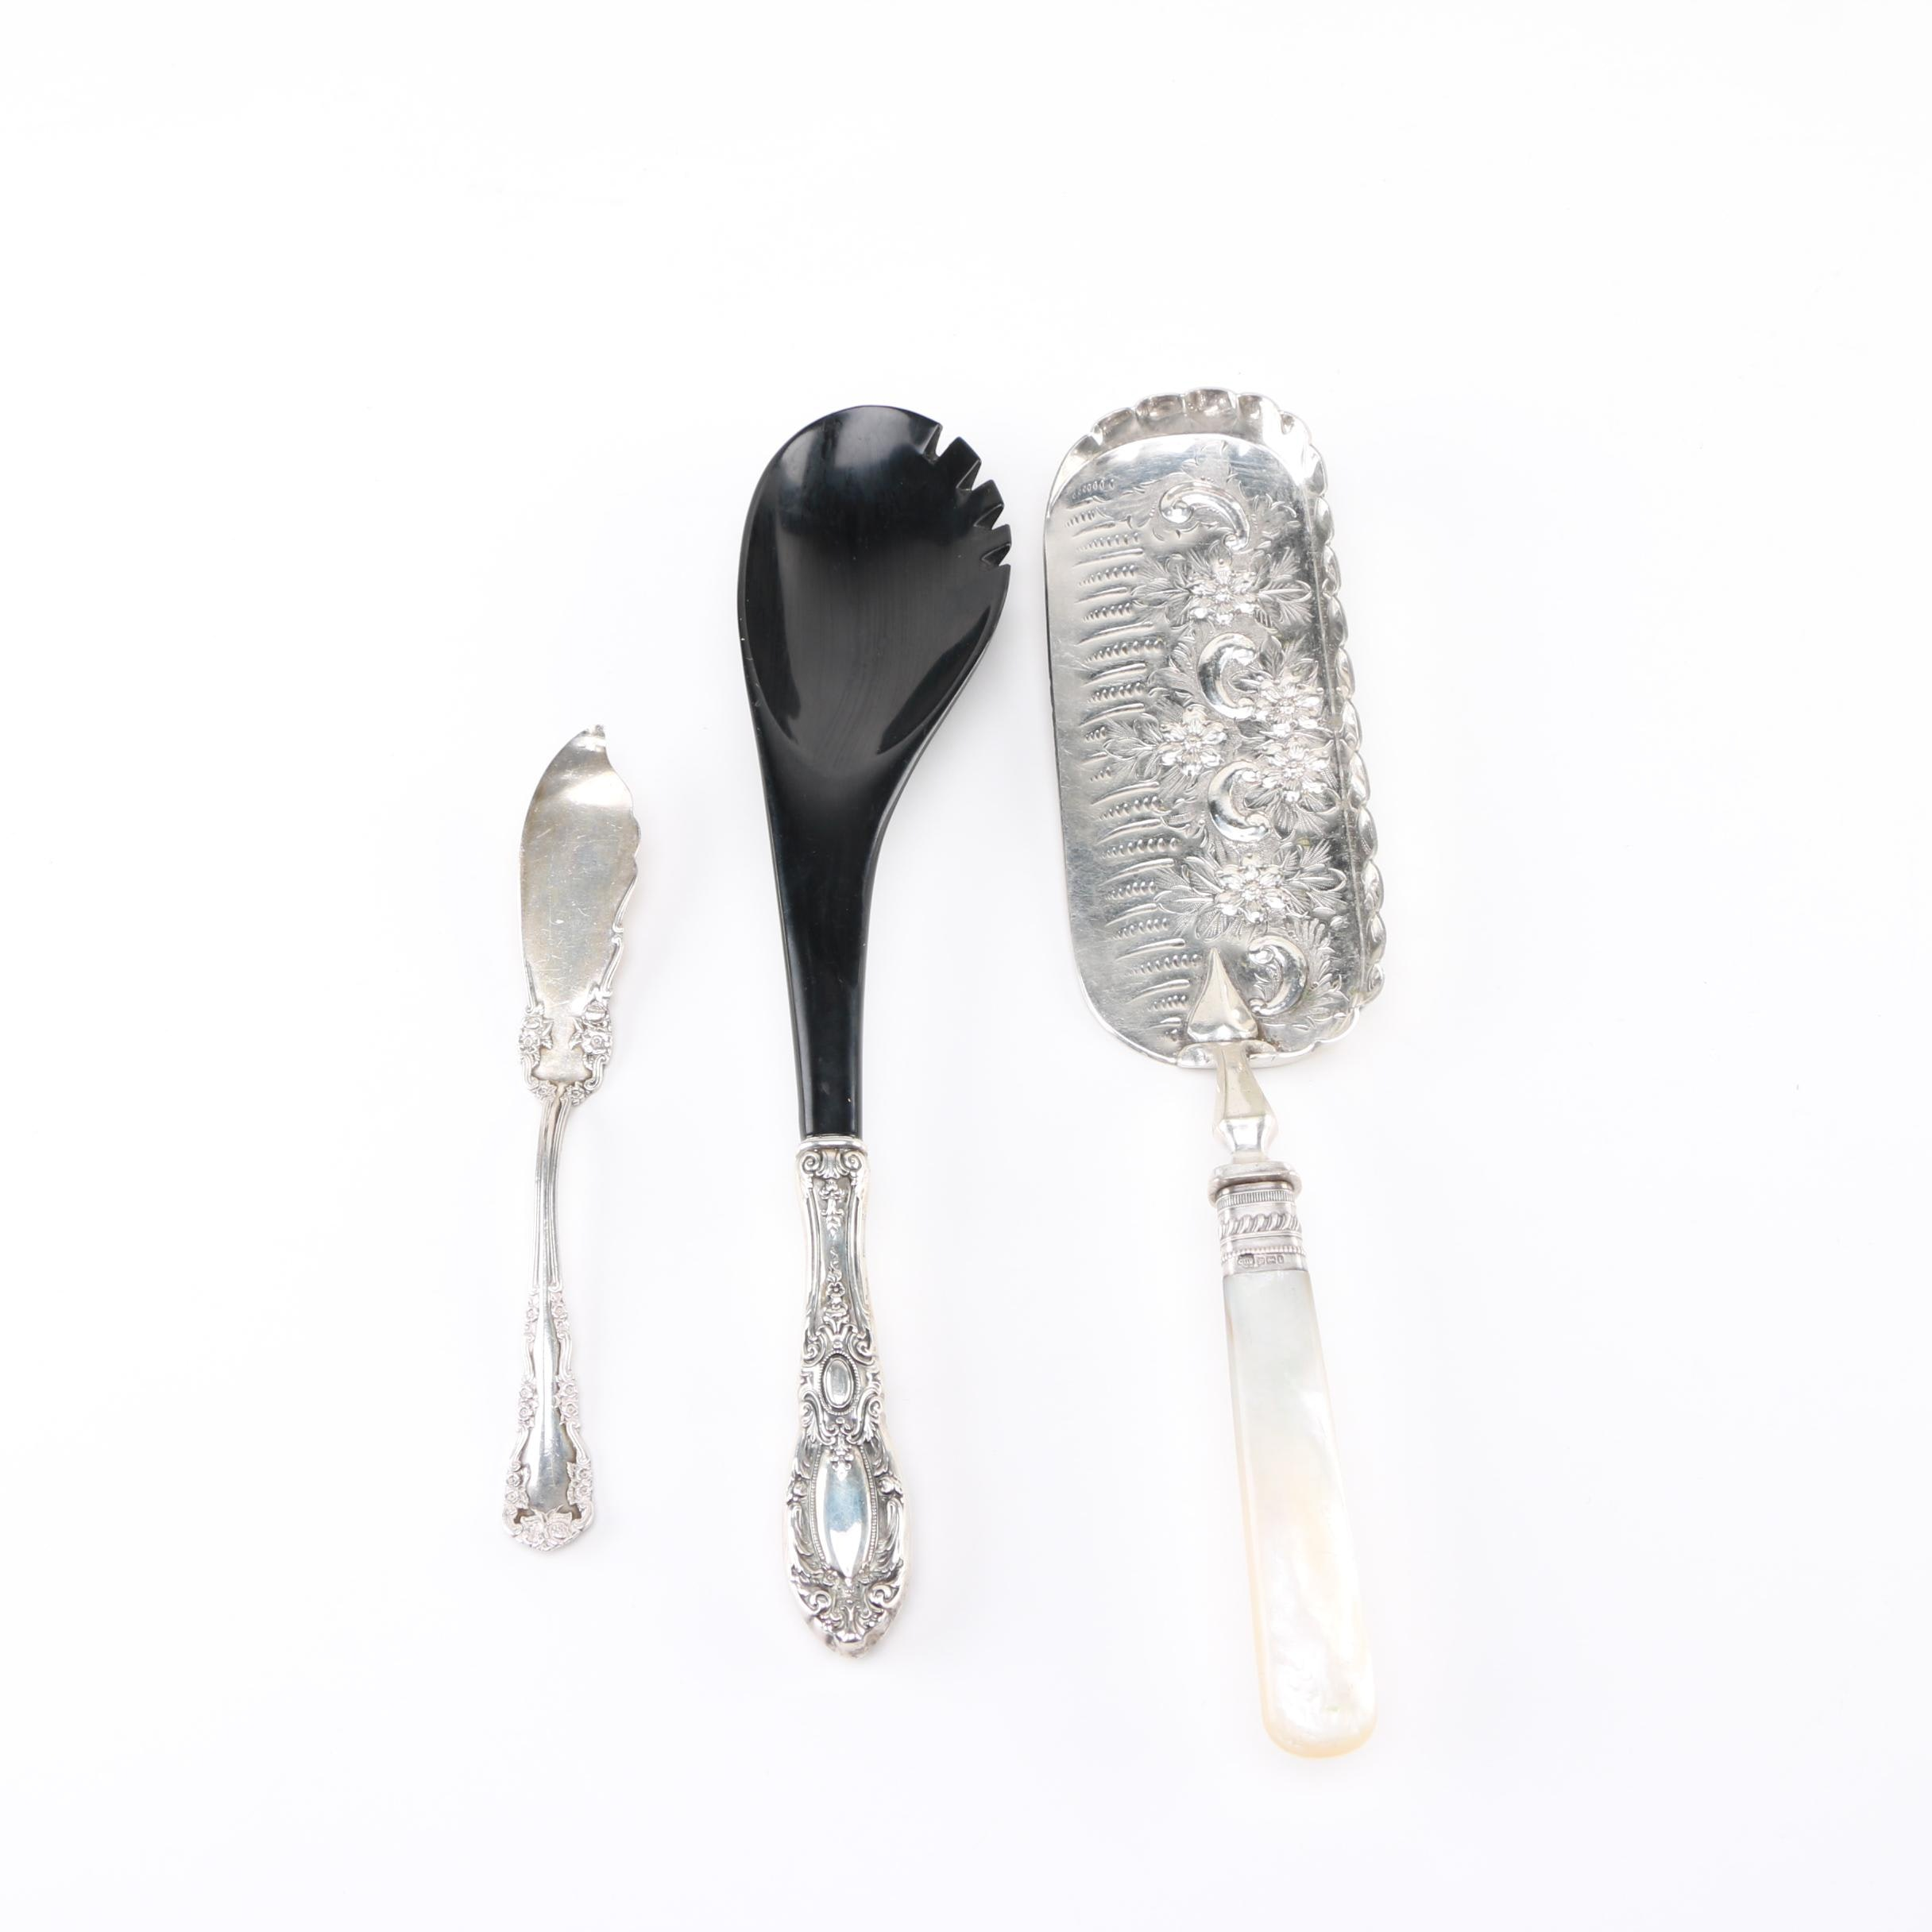 1903 Sheffield Sterling Silver Crumb Catcher and Other Sterling Utensils